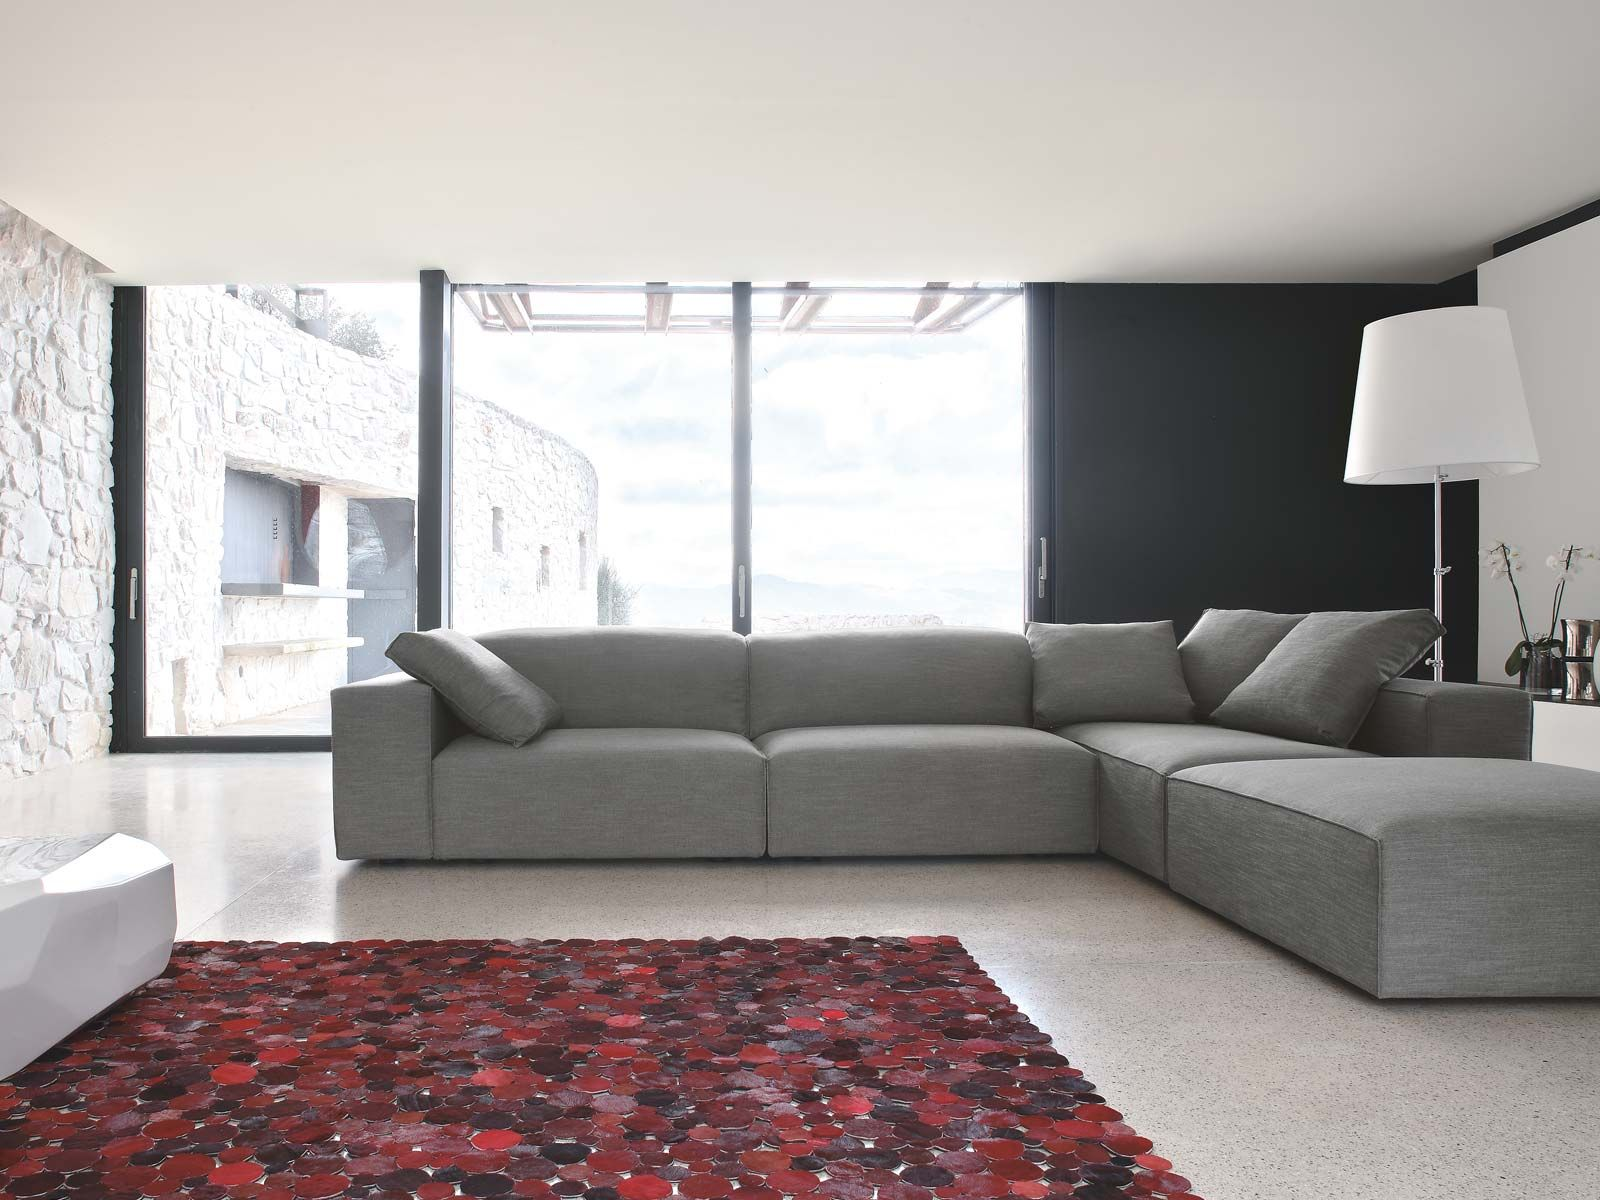 musa spa divani e poltrone sofas and armchairs home sofas sofa armchair lounge furniture. Black Bedroom Furniture Sets. Home Design Ideas